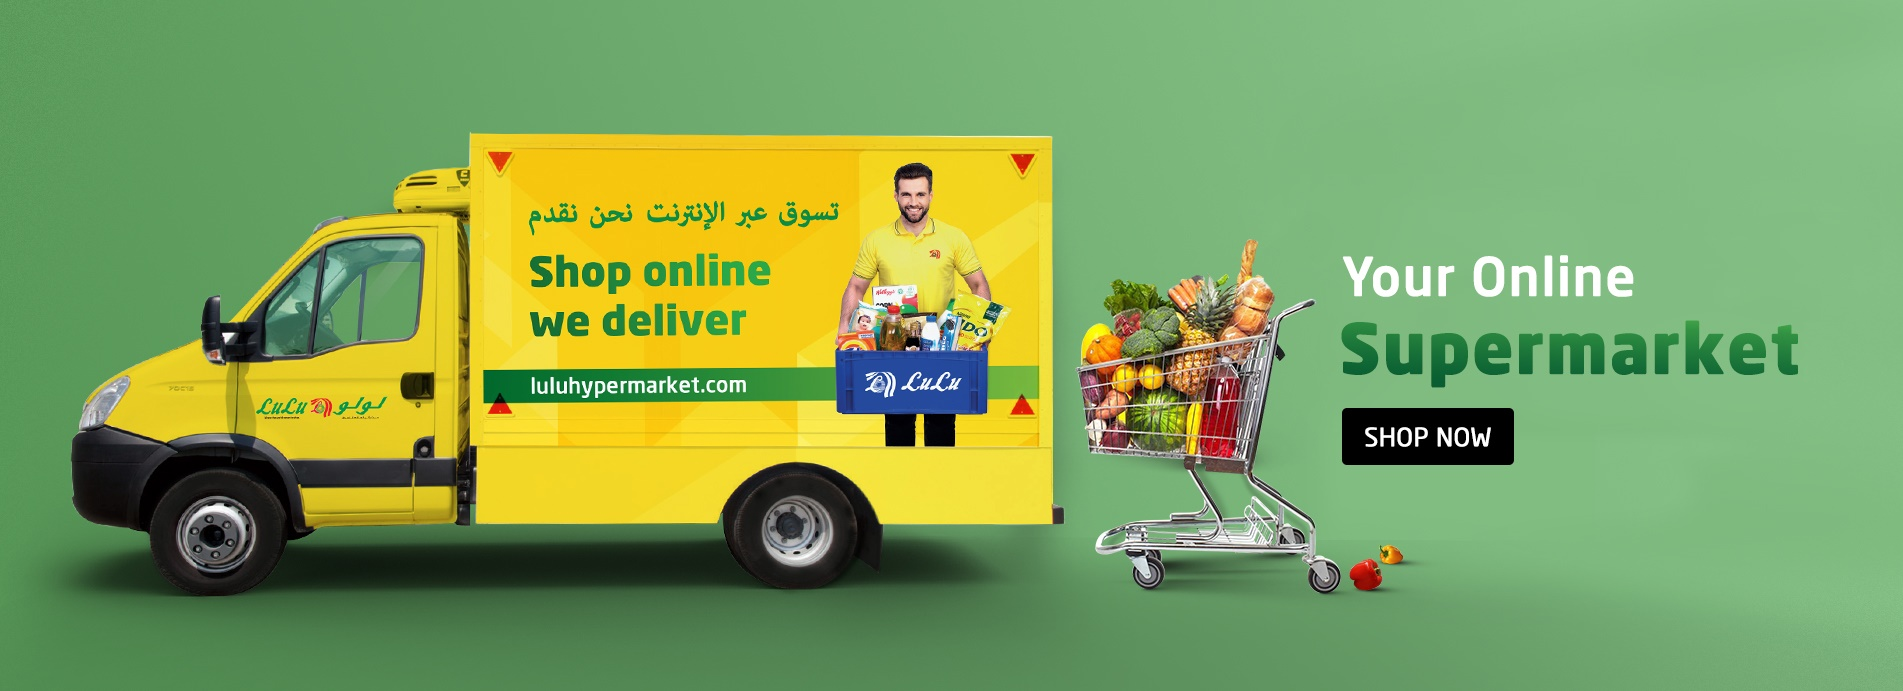 LuLu Hypermarket UAE: Best deals & offers on Groceries, Electronics